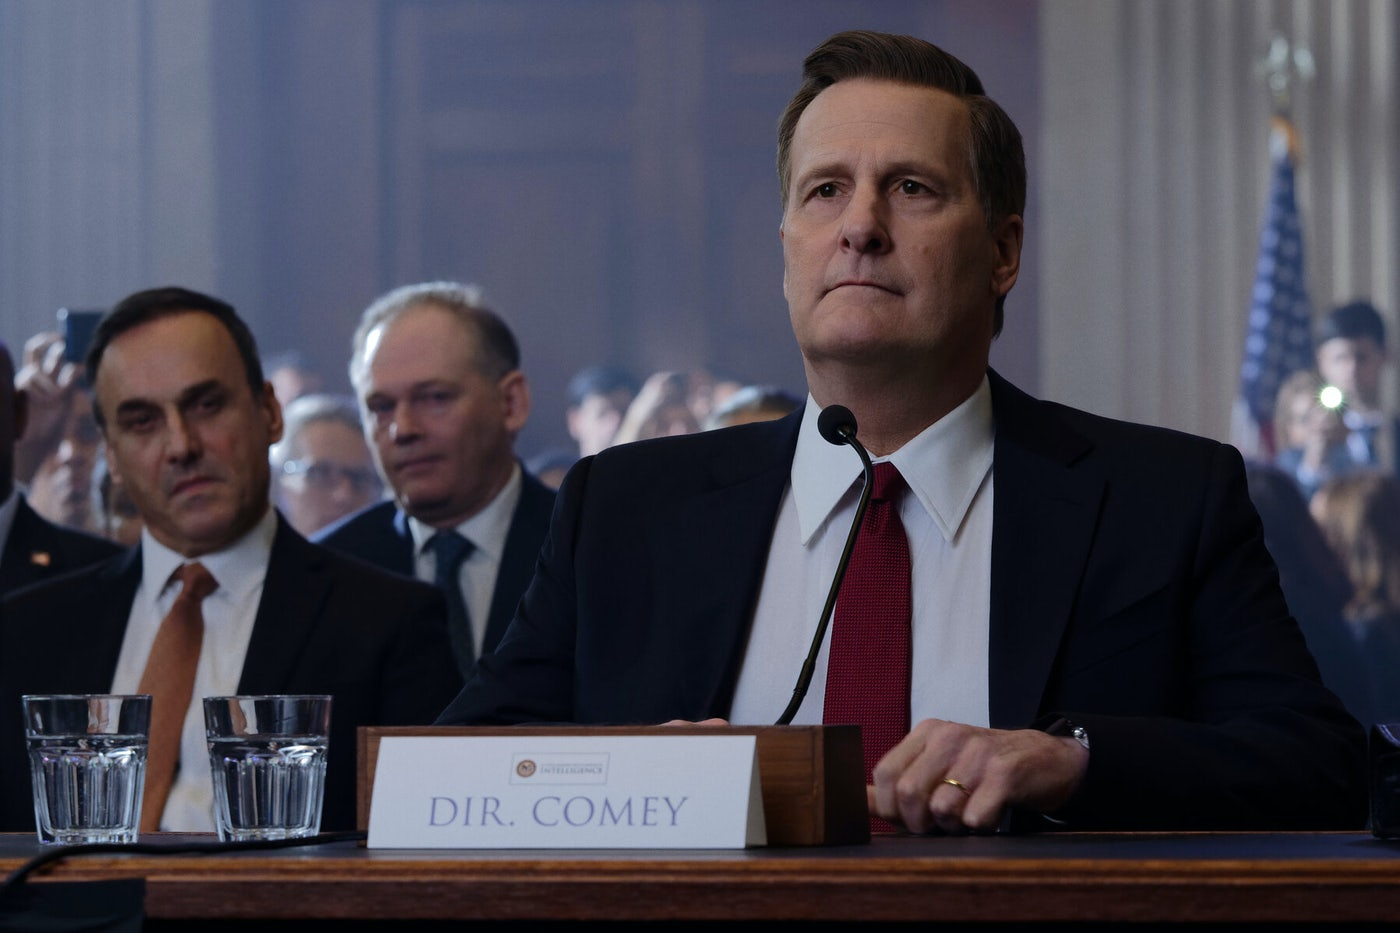 Jeff Daniels plays FBI director James Comey in Showtime's miniseries The Comey Rule.